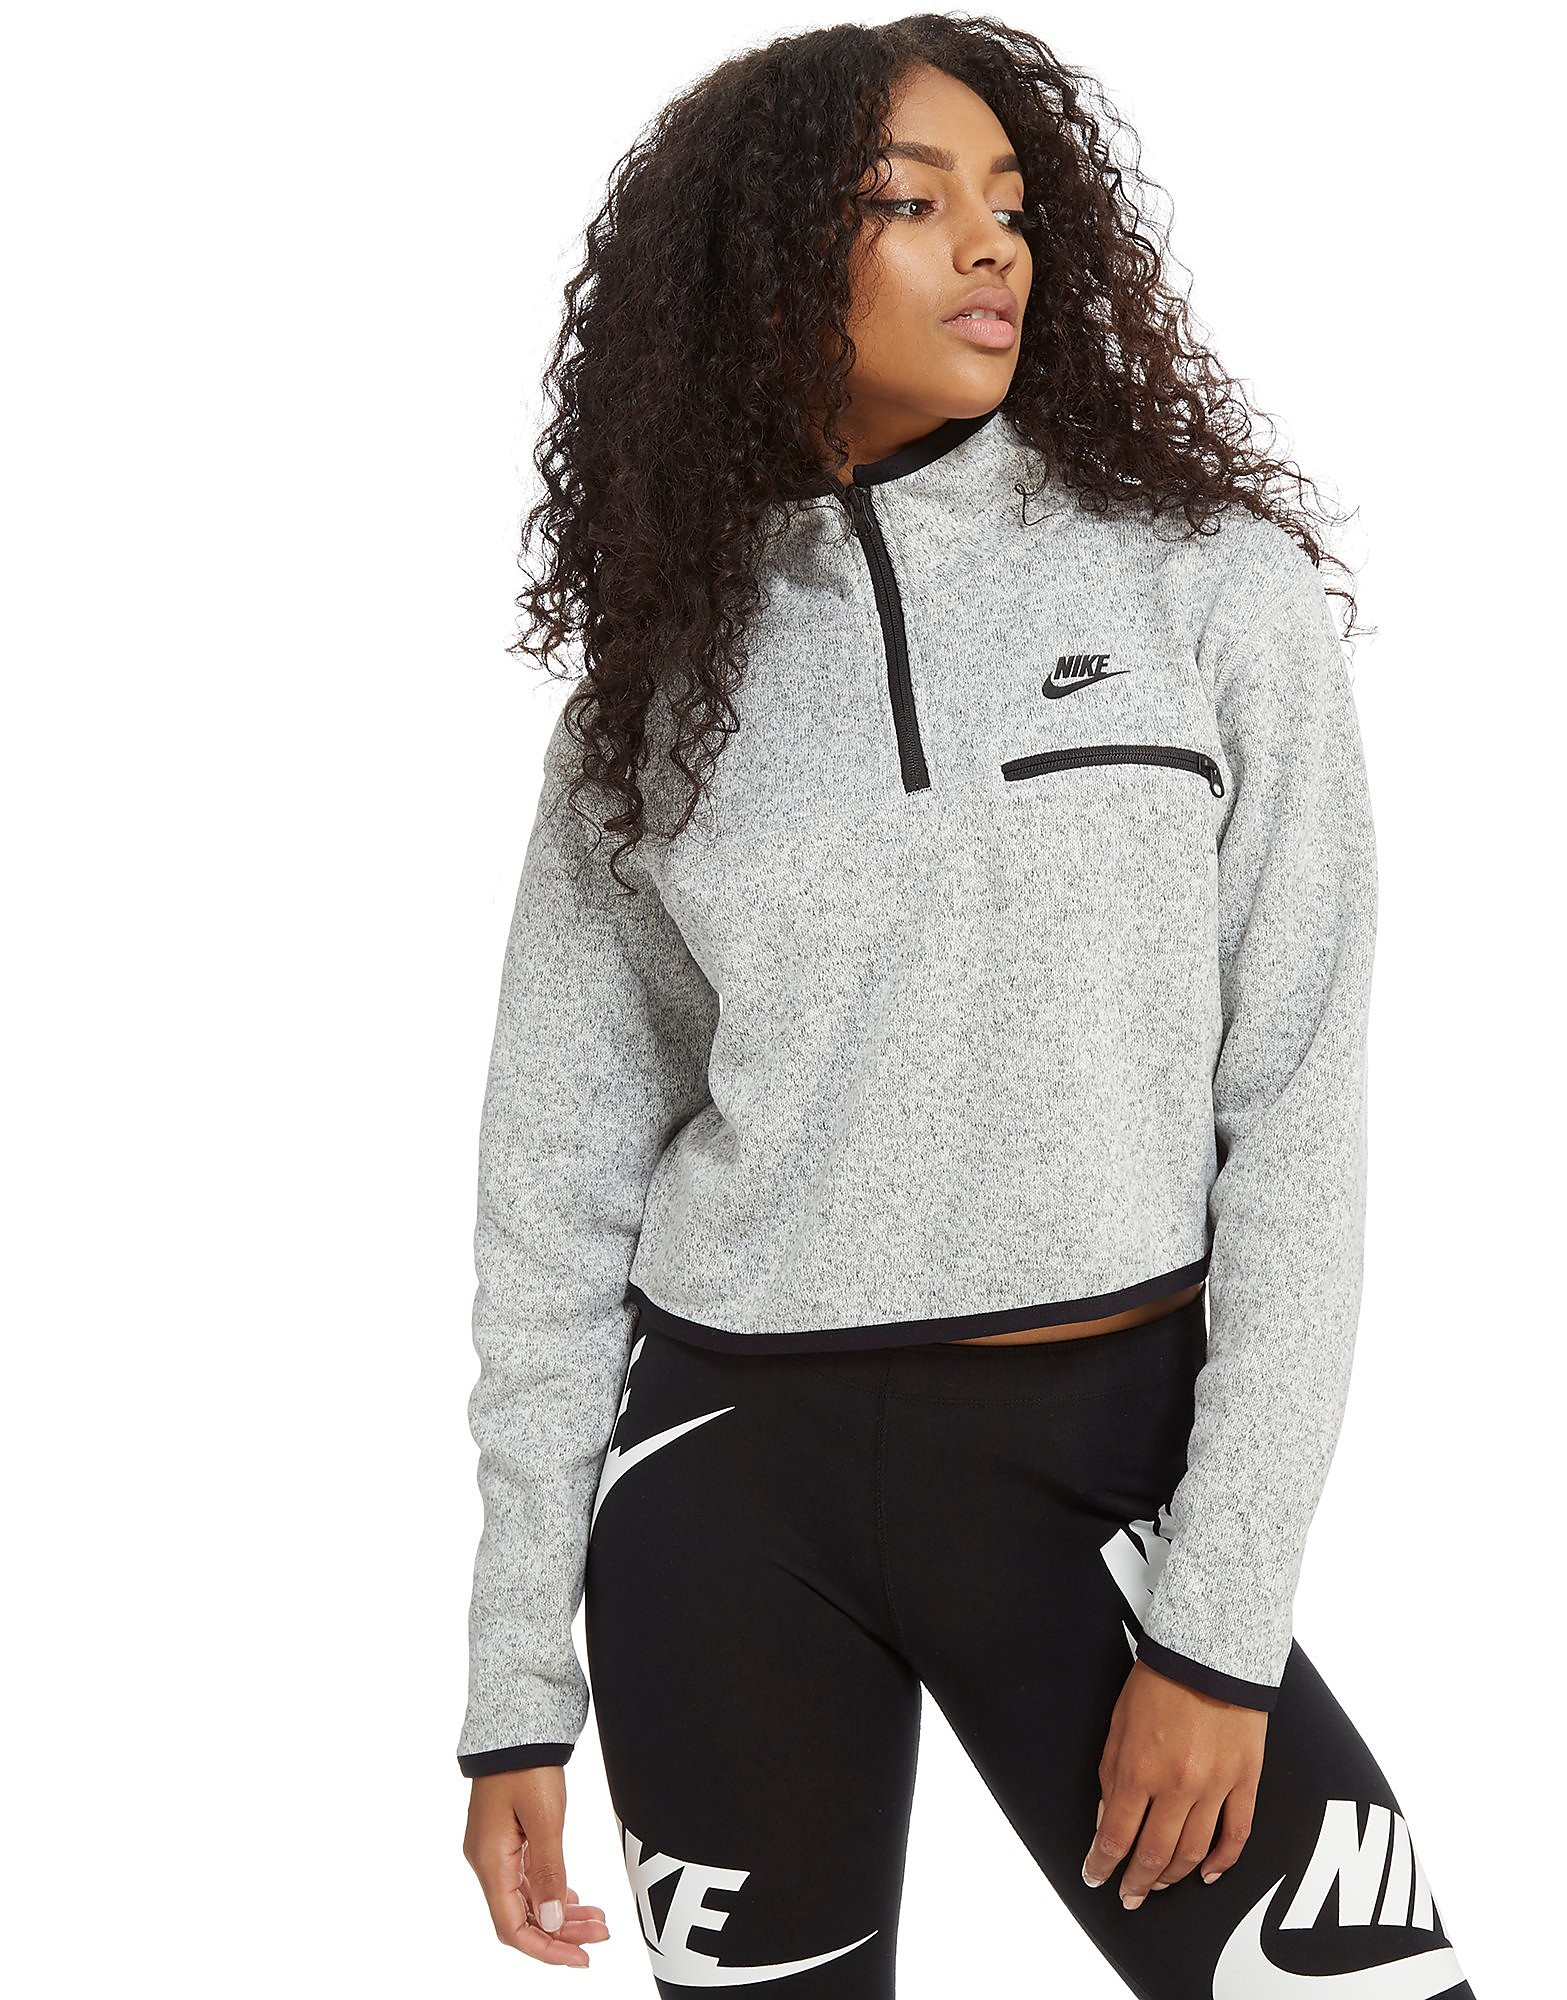 Nike Summit Long Sleeve Sweatshirt